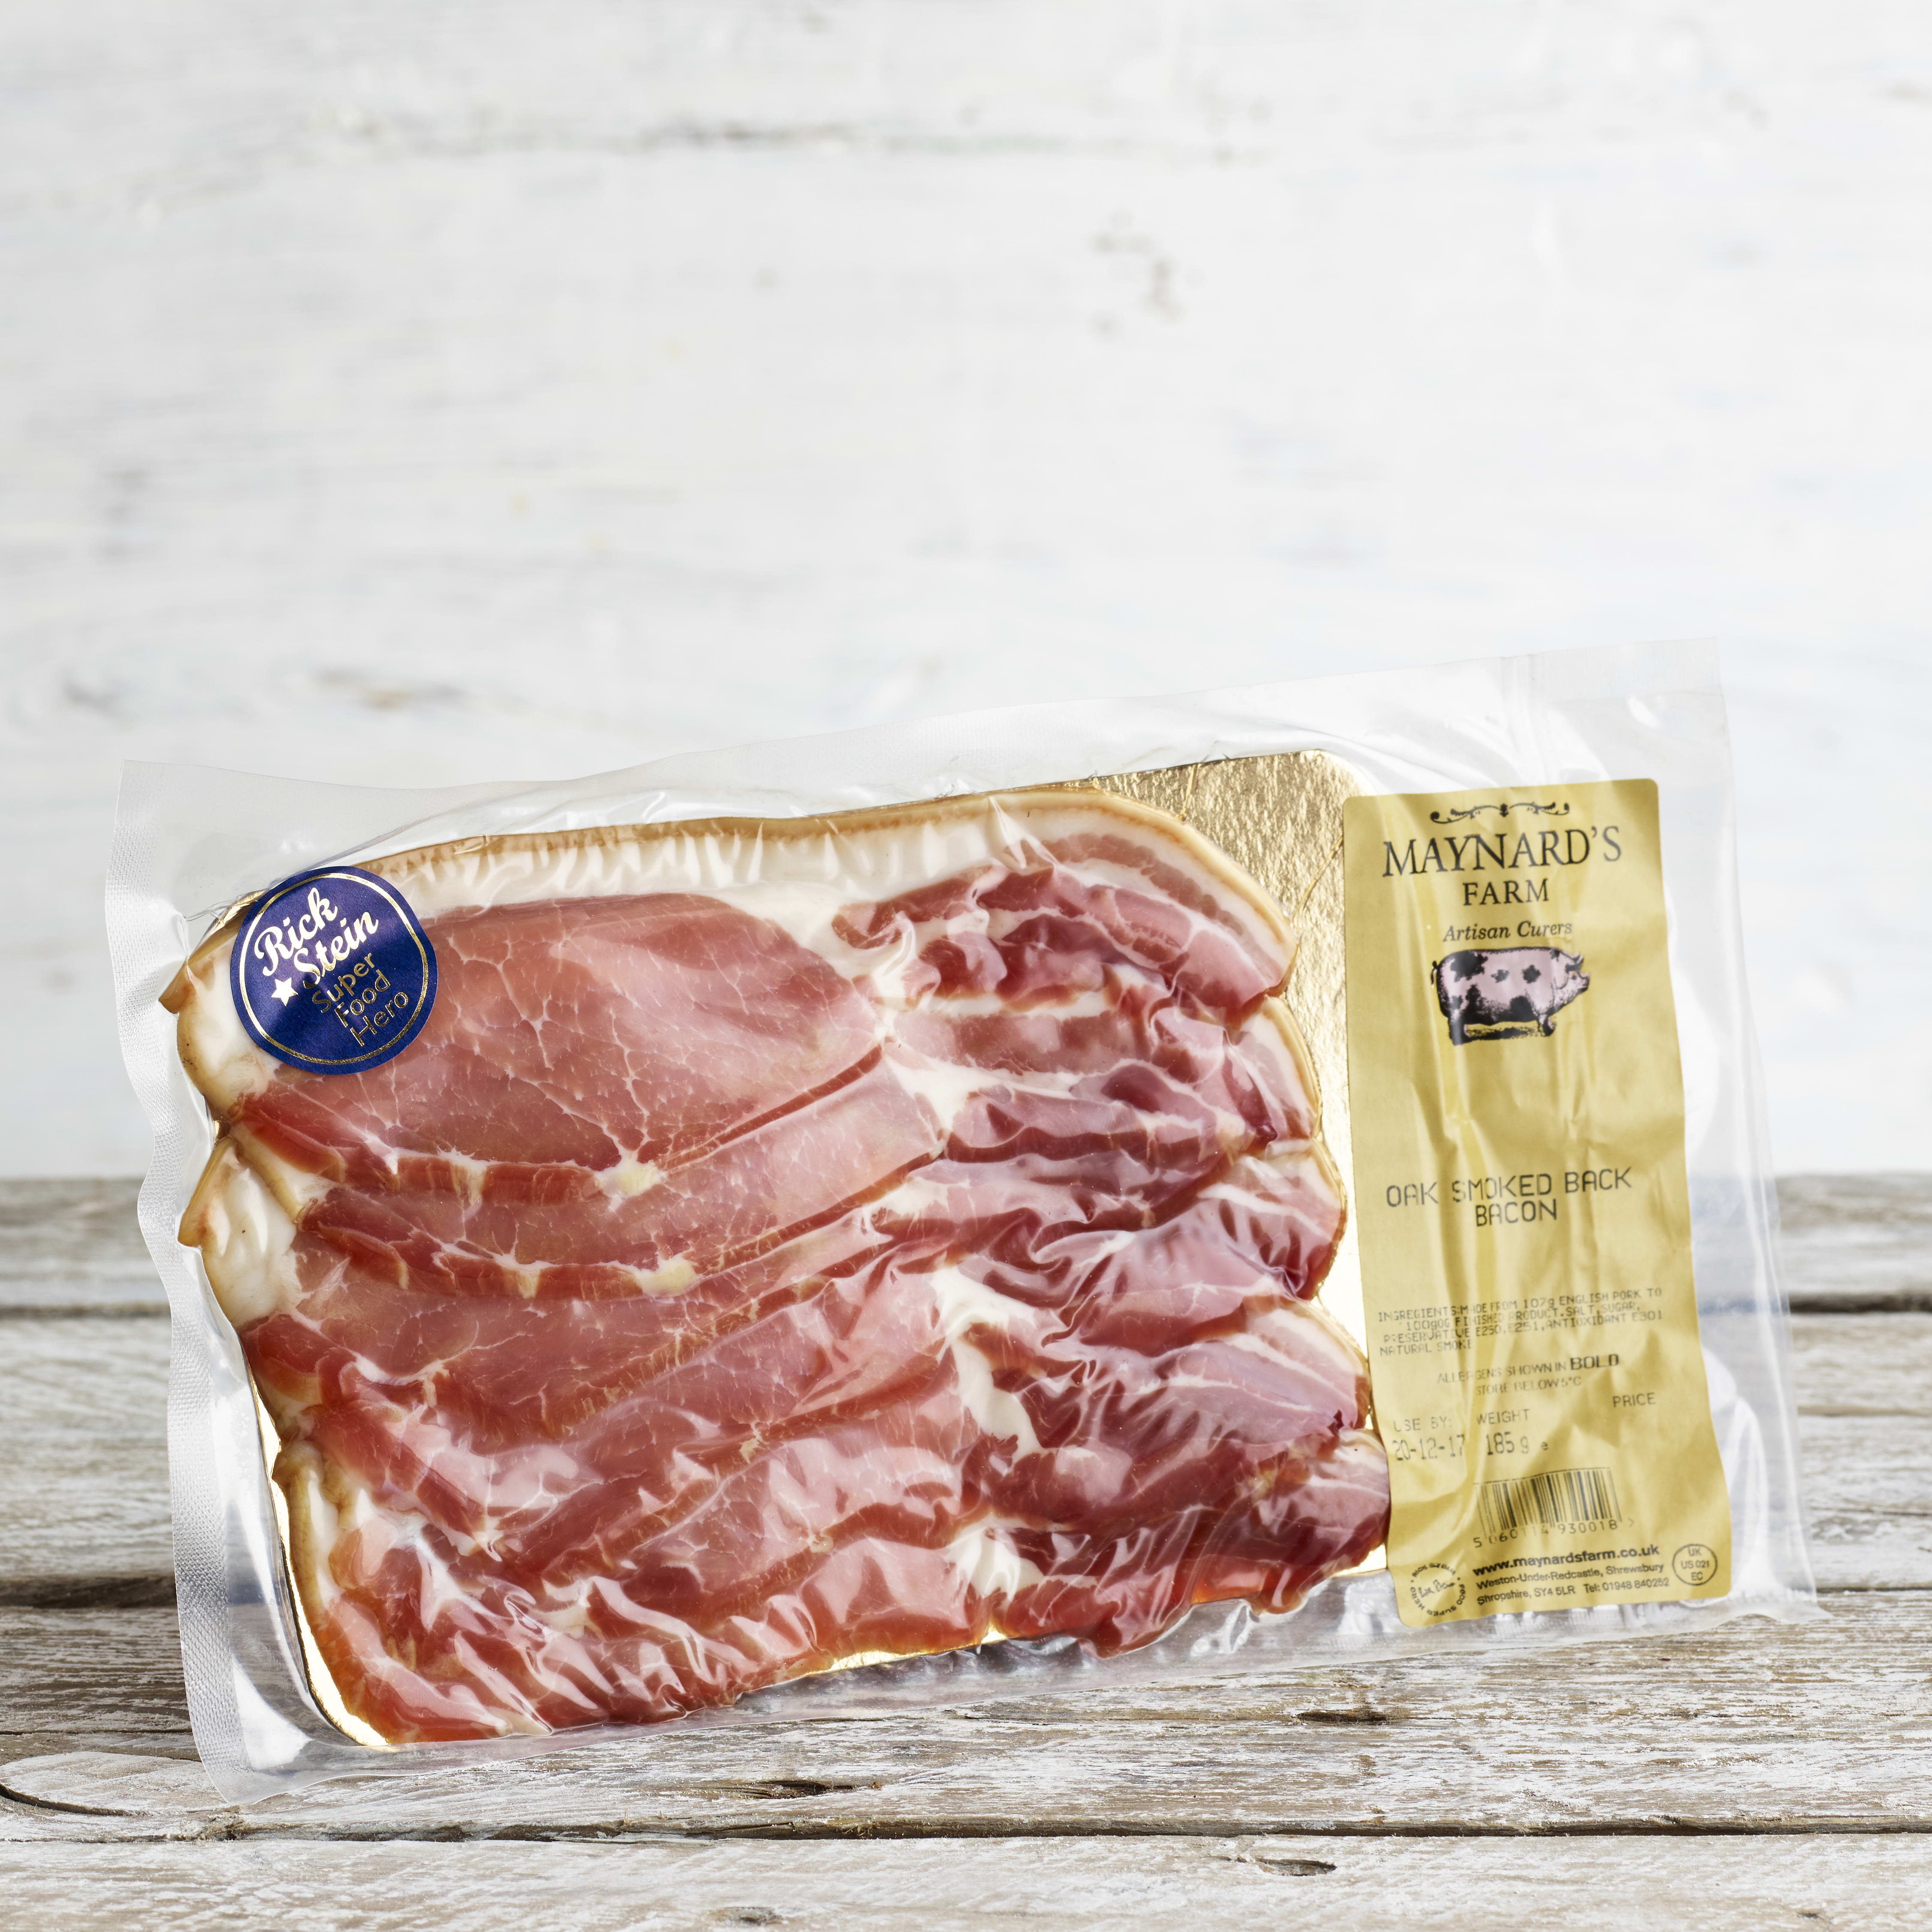 Maynard's Dry Cure Oak Smoked Bacon, 185G